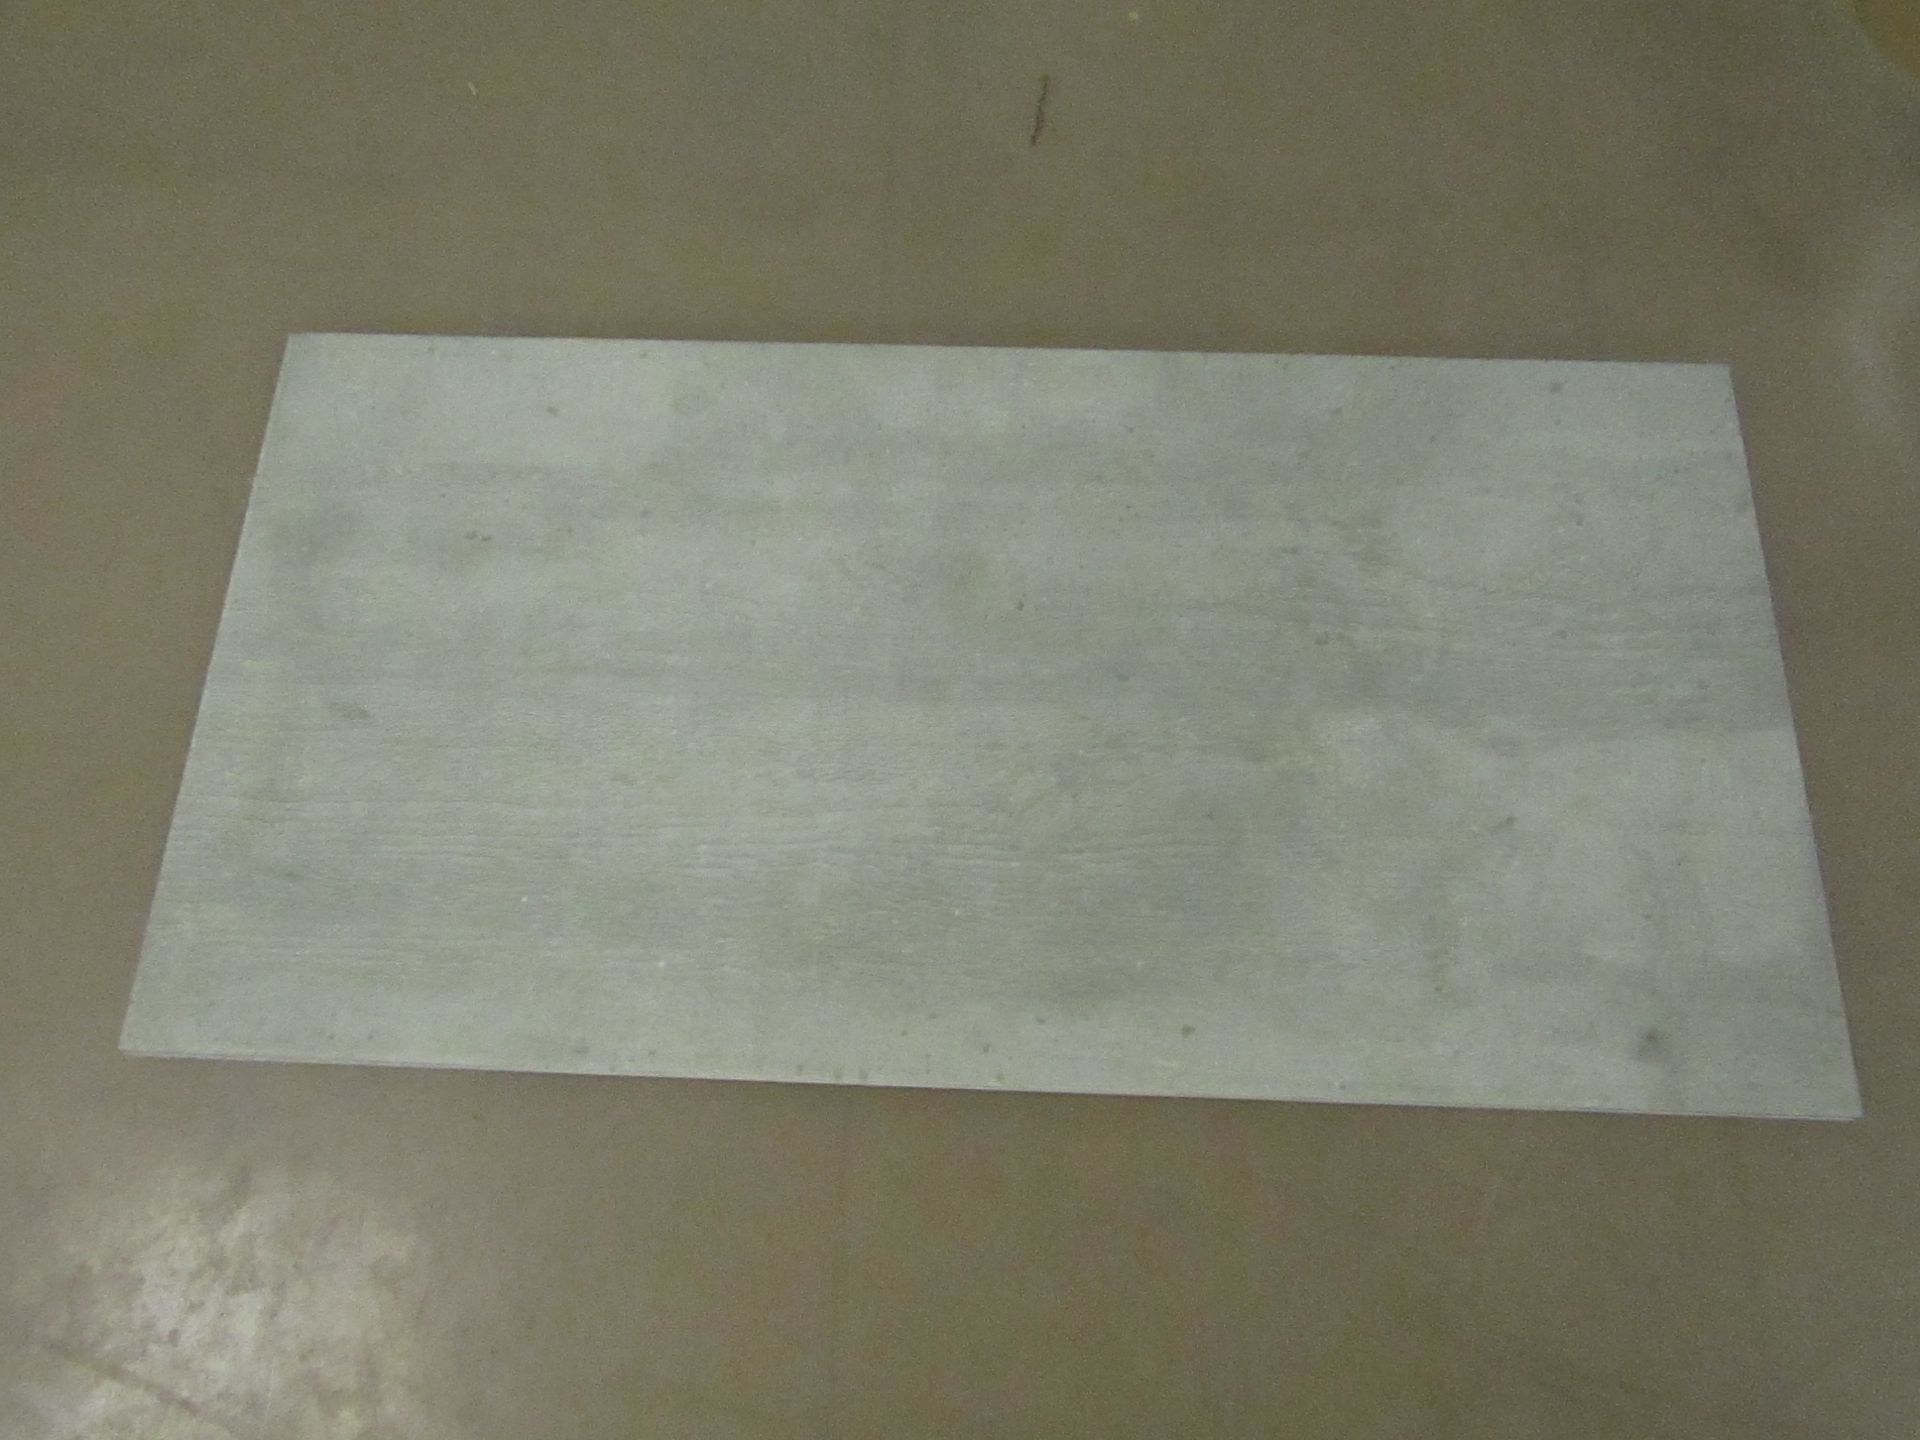 Pallet of 40x Packs of 5 Sherwood smoke Matt finish 300x600 wall and Floor Tiles By Johnsons, New,